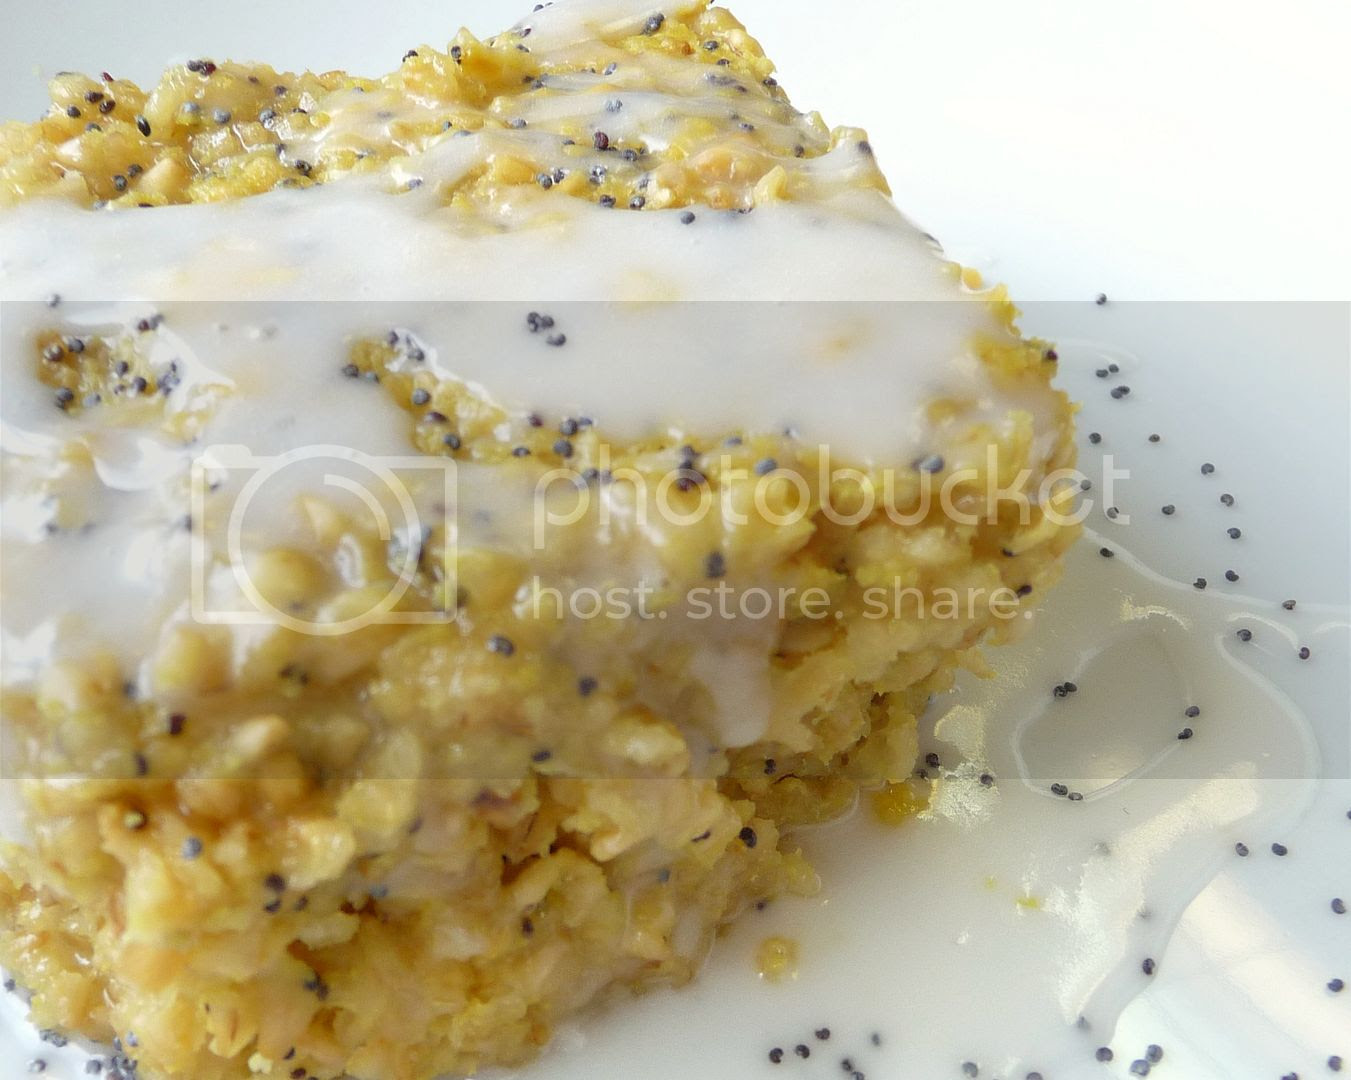 lemon poppy seed baked oatmeal